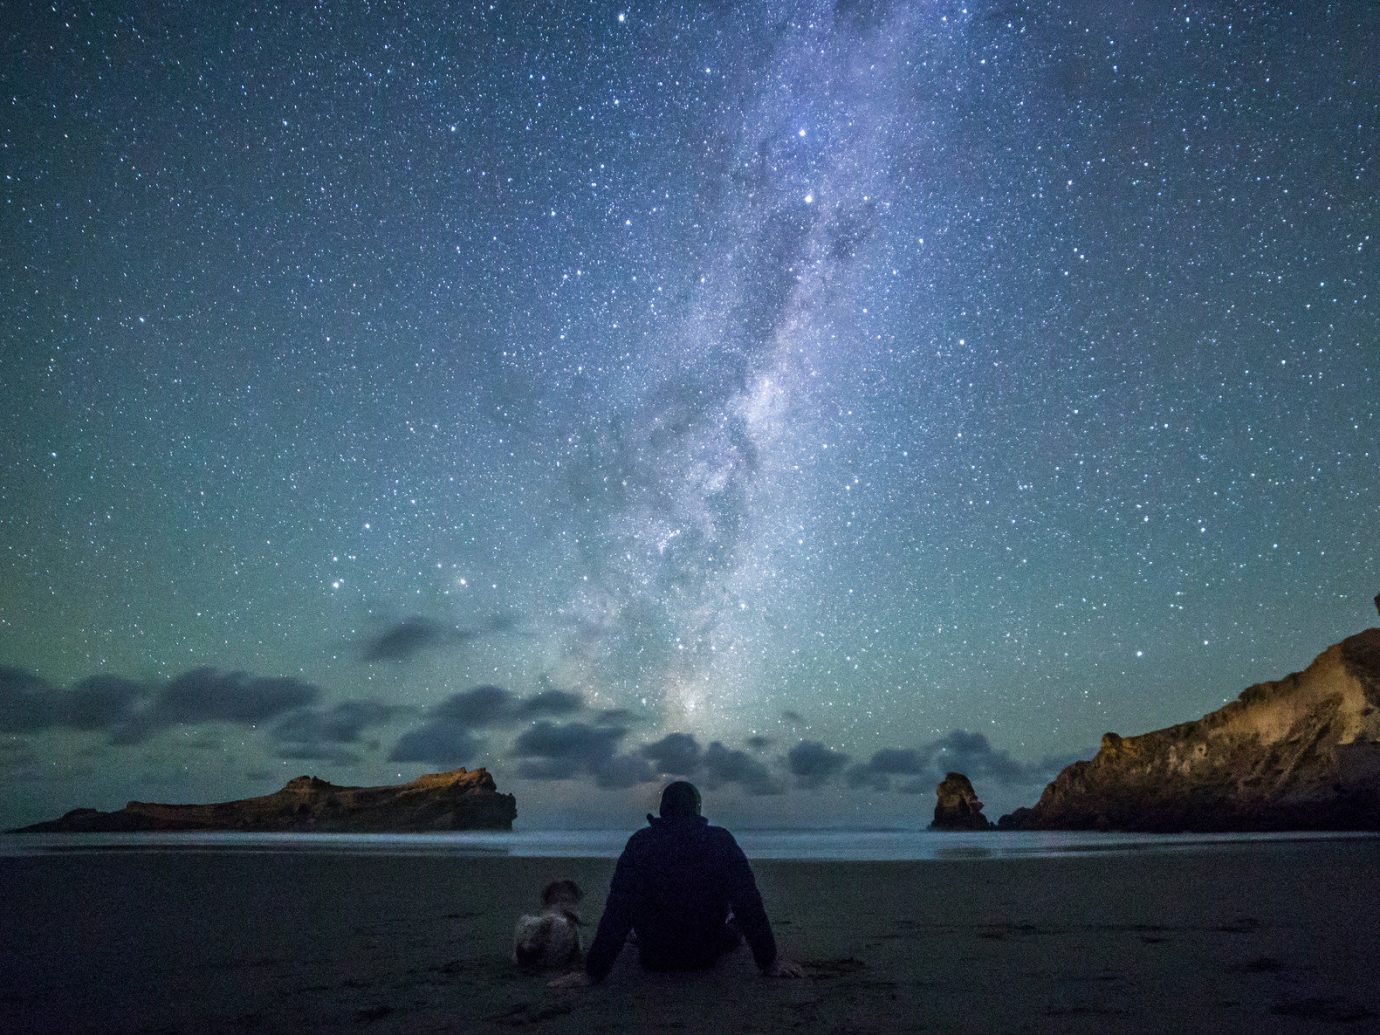 Beach calm isolation majestic Nature night Night Sky northern lights Ocean Oceania Outdoors people remote Rocks Scenic views serene silhouette star gazing stars Travel Tips Trip Ideas water outdoor sky galaxy astronomical object star astronomy Sea moonlight milky way